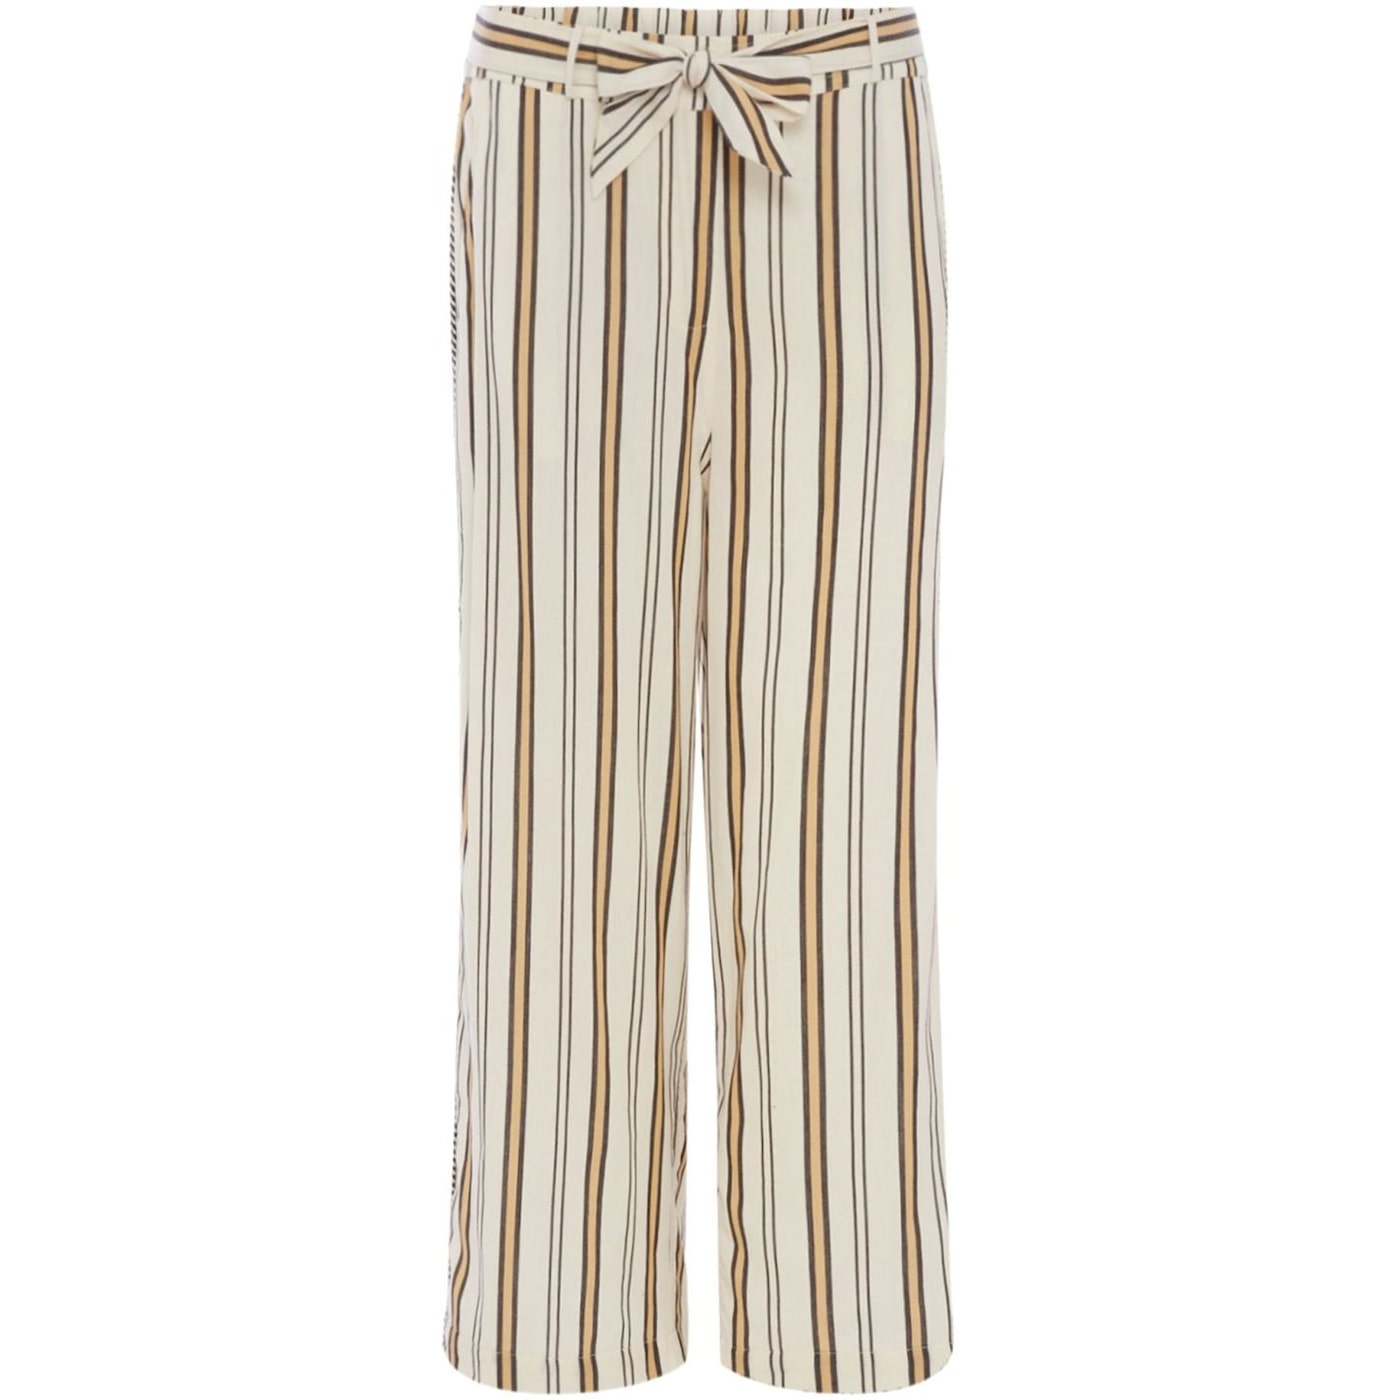 Maison De Nimes STRIPE SIDE TRIM TROUSER